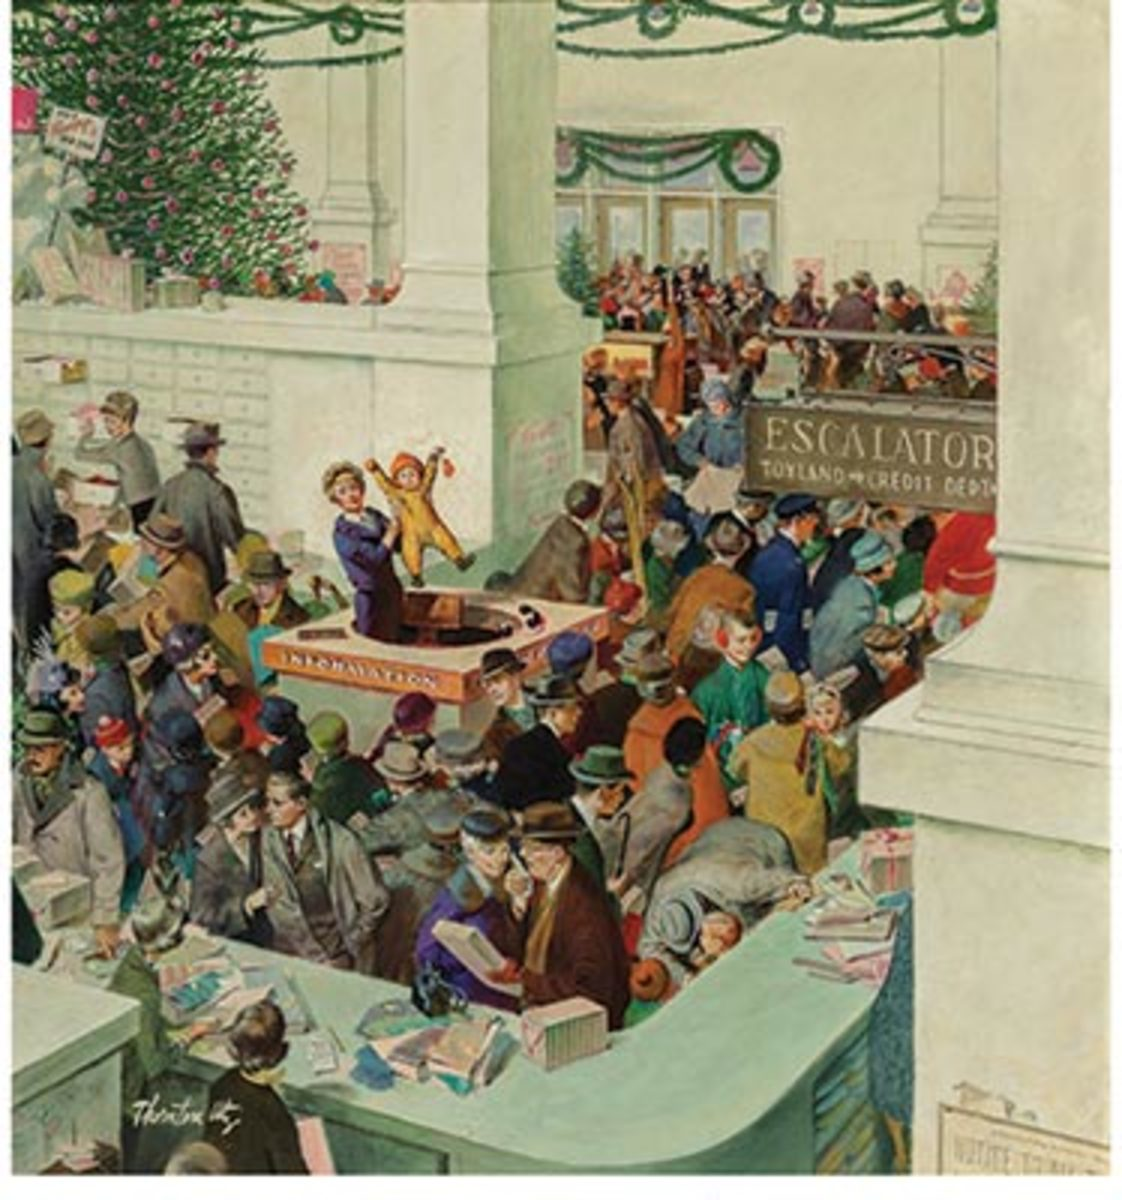 Thorton UtzLove's Lost Child at the Information Booth,The Saturday Evening Post cover, December 20, 1958sold for $206,250– a new auction record for the artist.